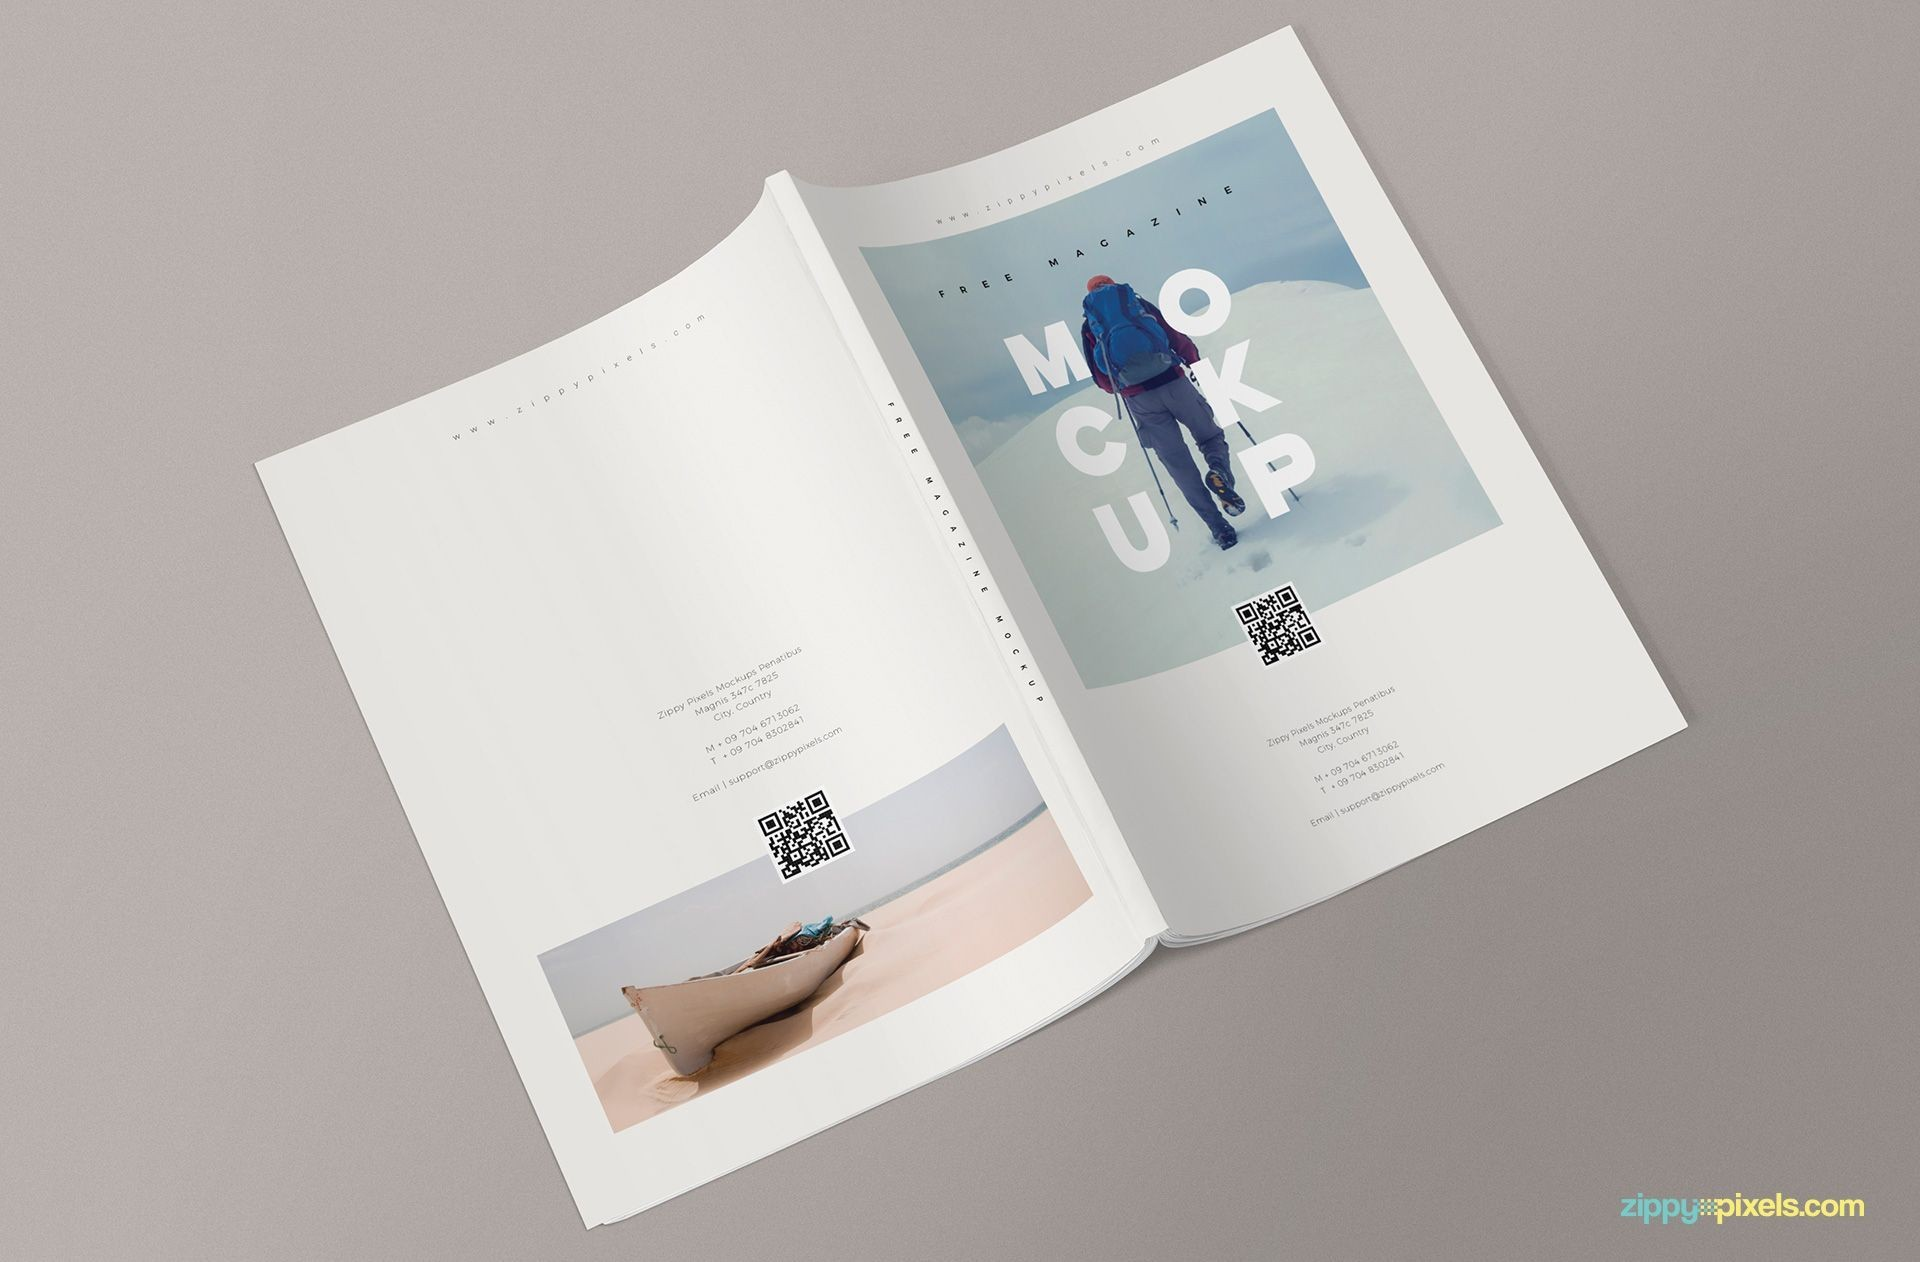 002 Amazing Photoshop Magazine Layout Template Free Download Concept 1920